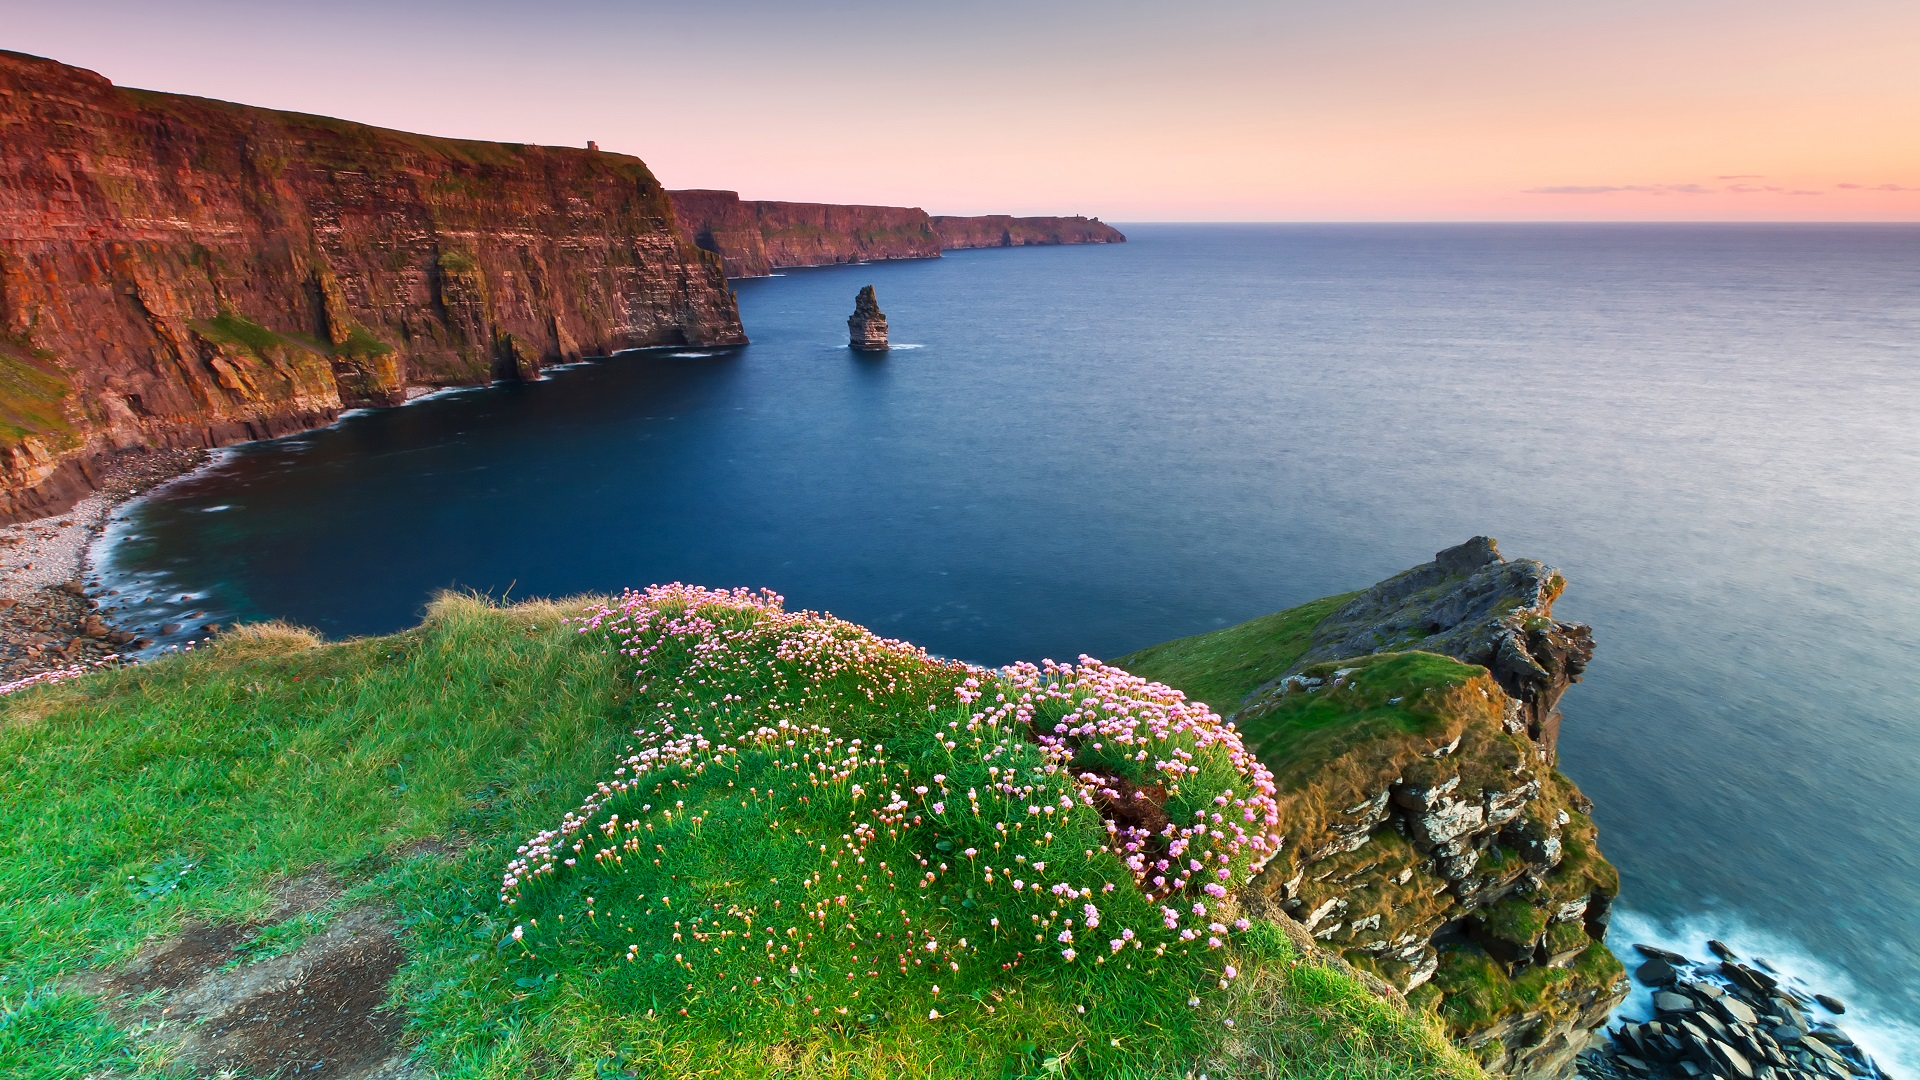 OLLI Travel Group Experiences the Beauty of Ireland